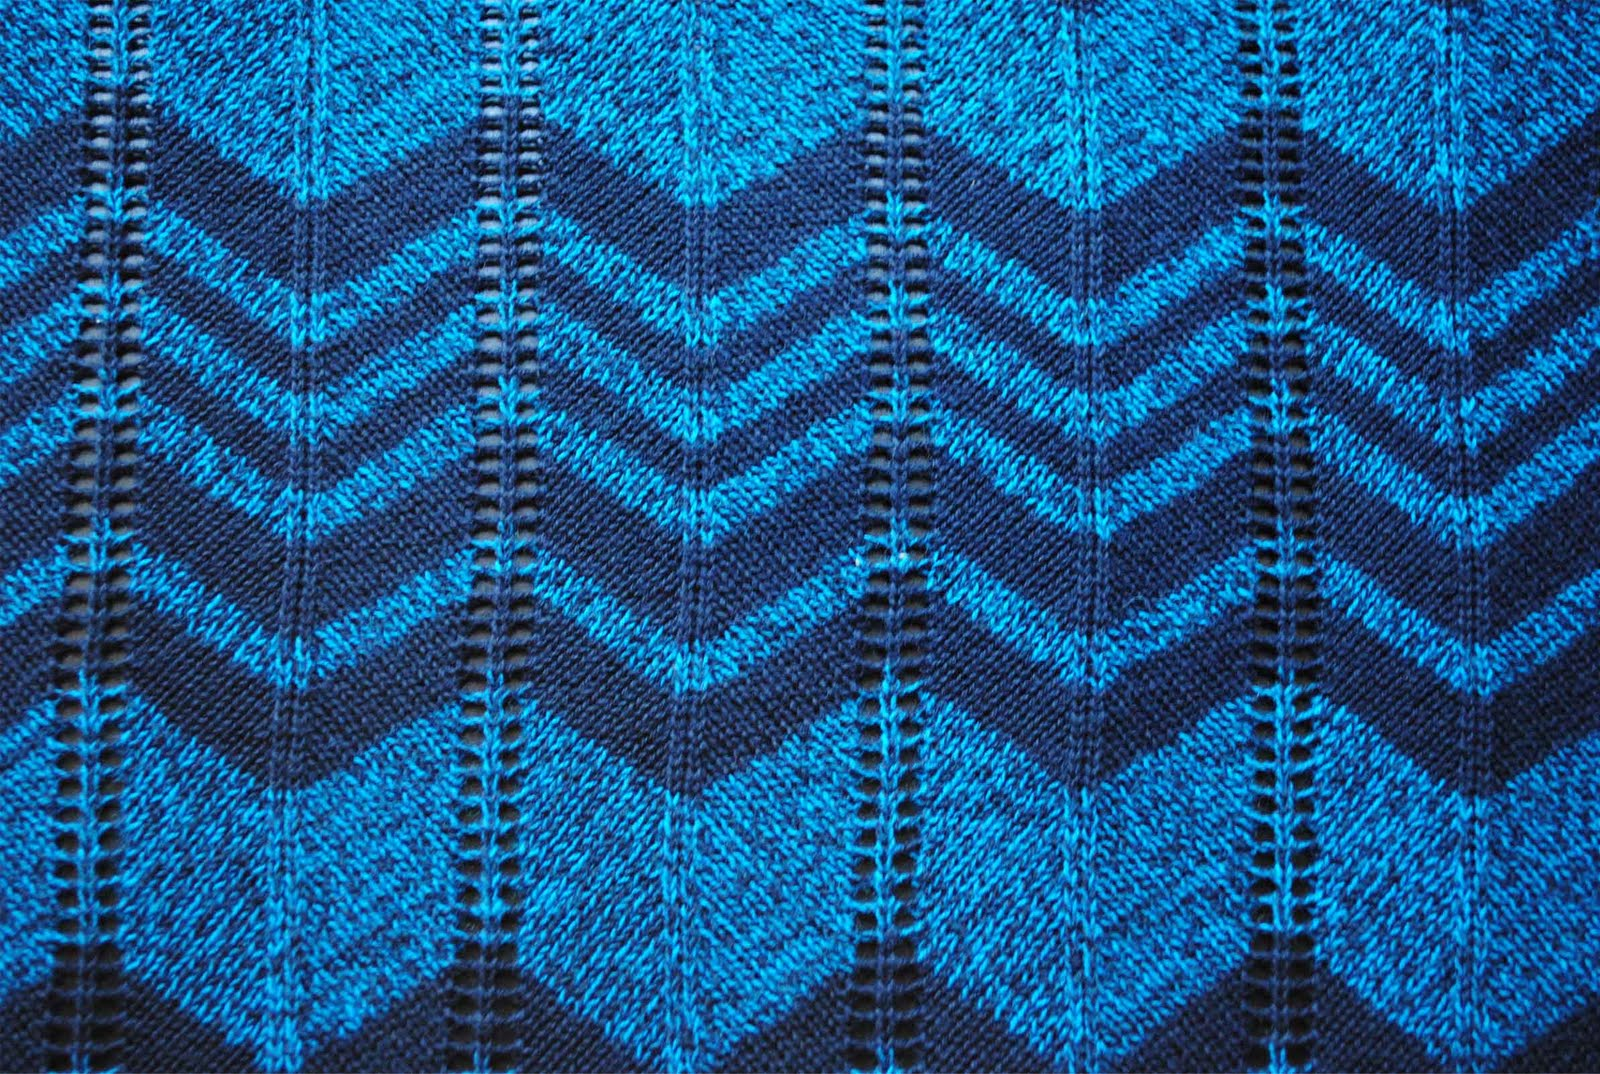 Knitting Stitches Chevron : zakka life: Missoni Inspired Chevron Knitting Pattern